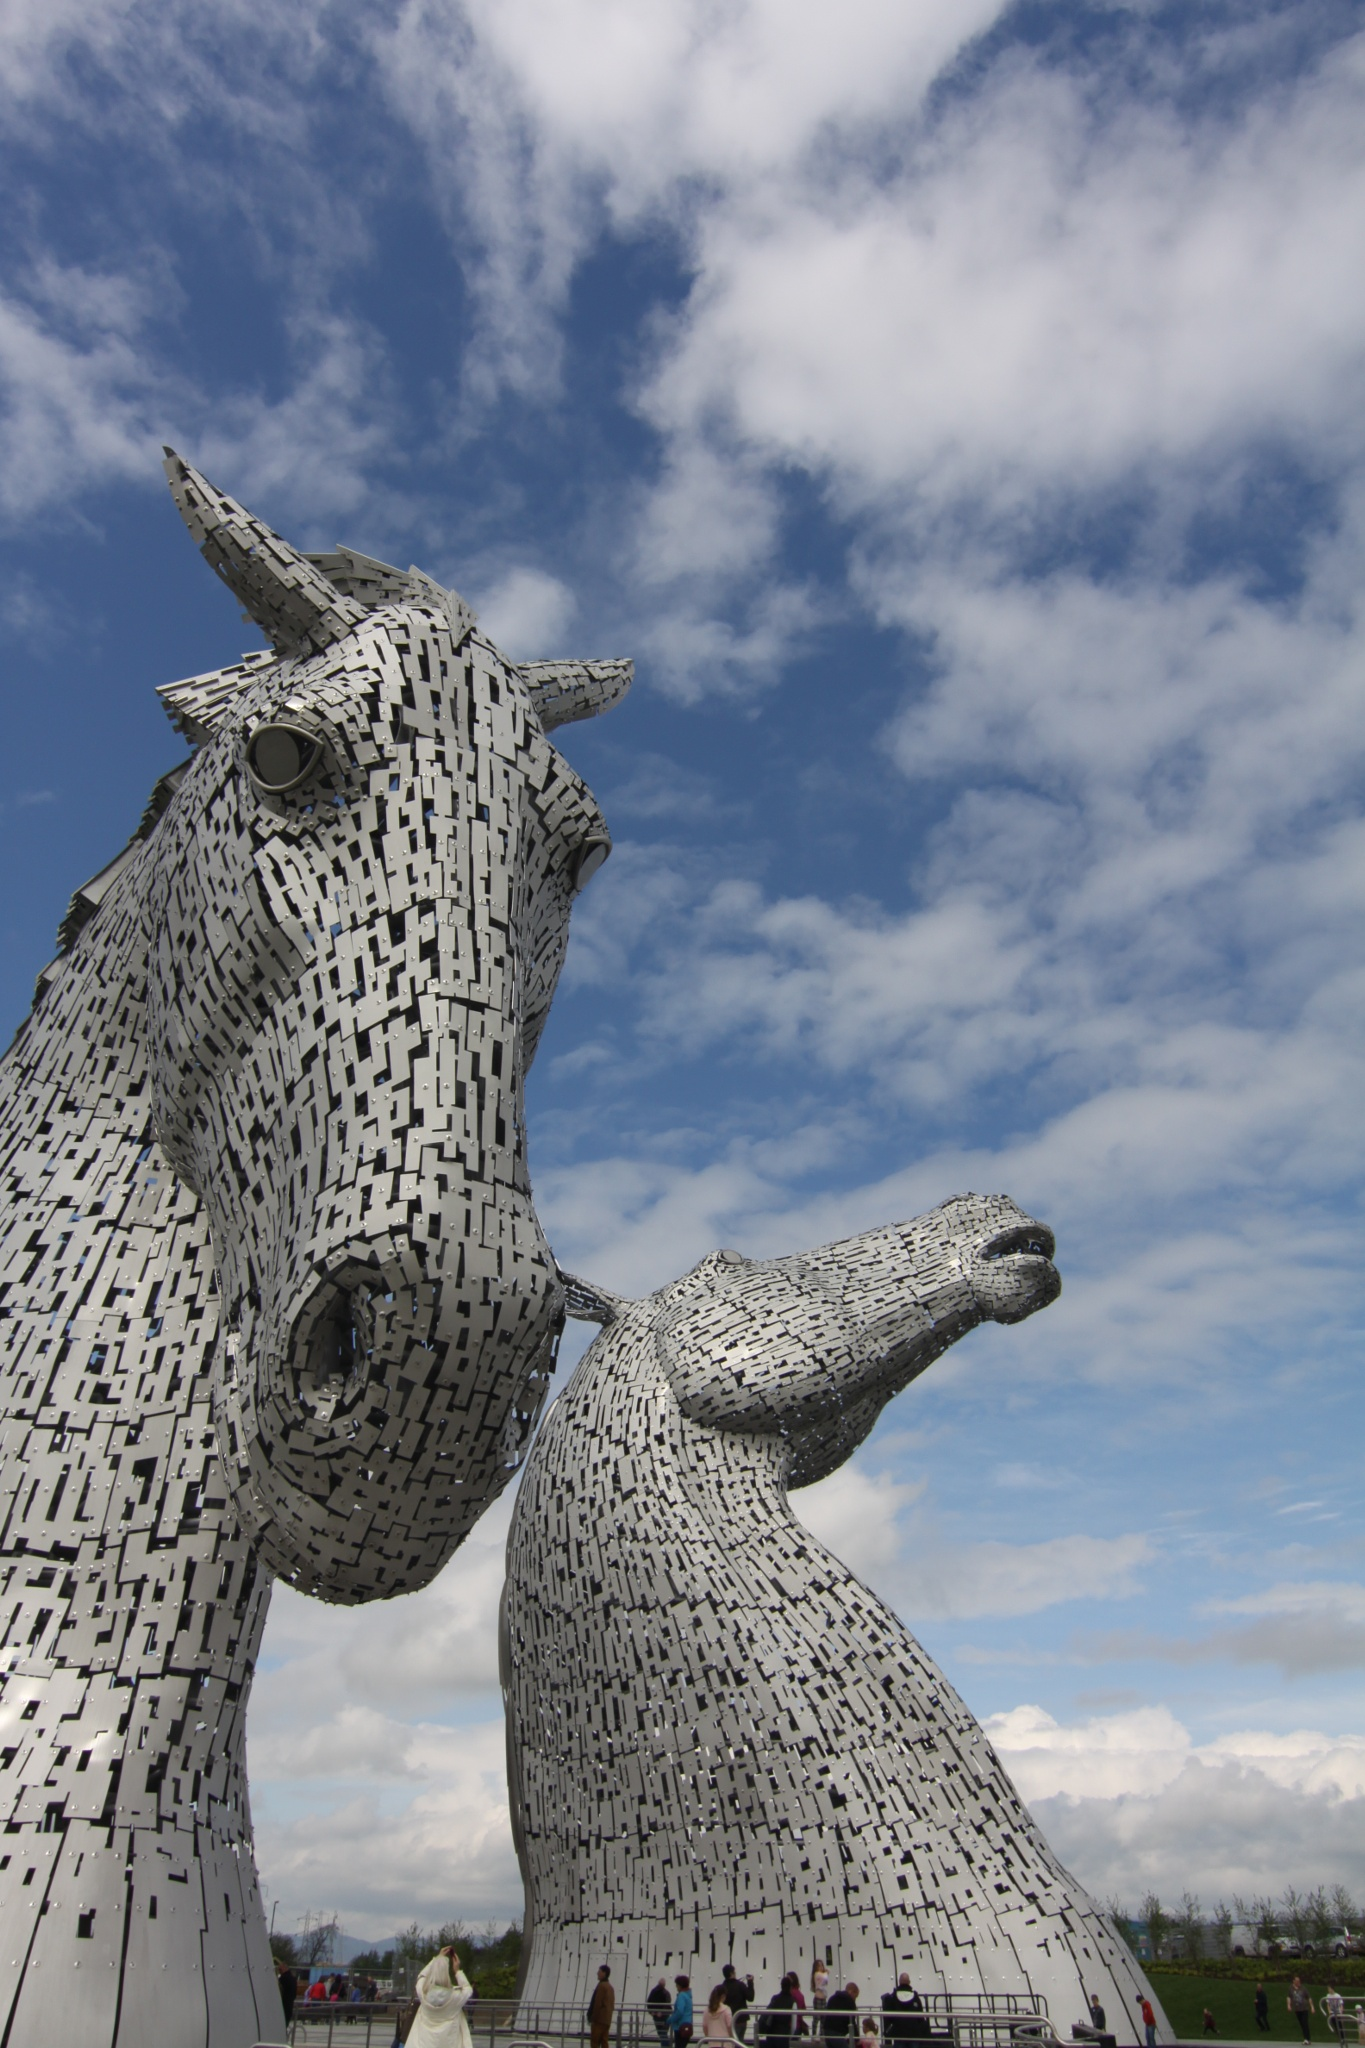 The Kelpies by Marf